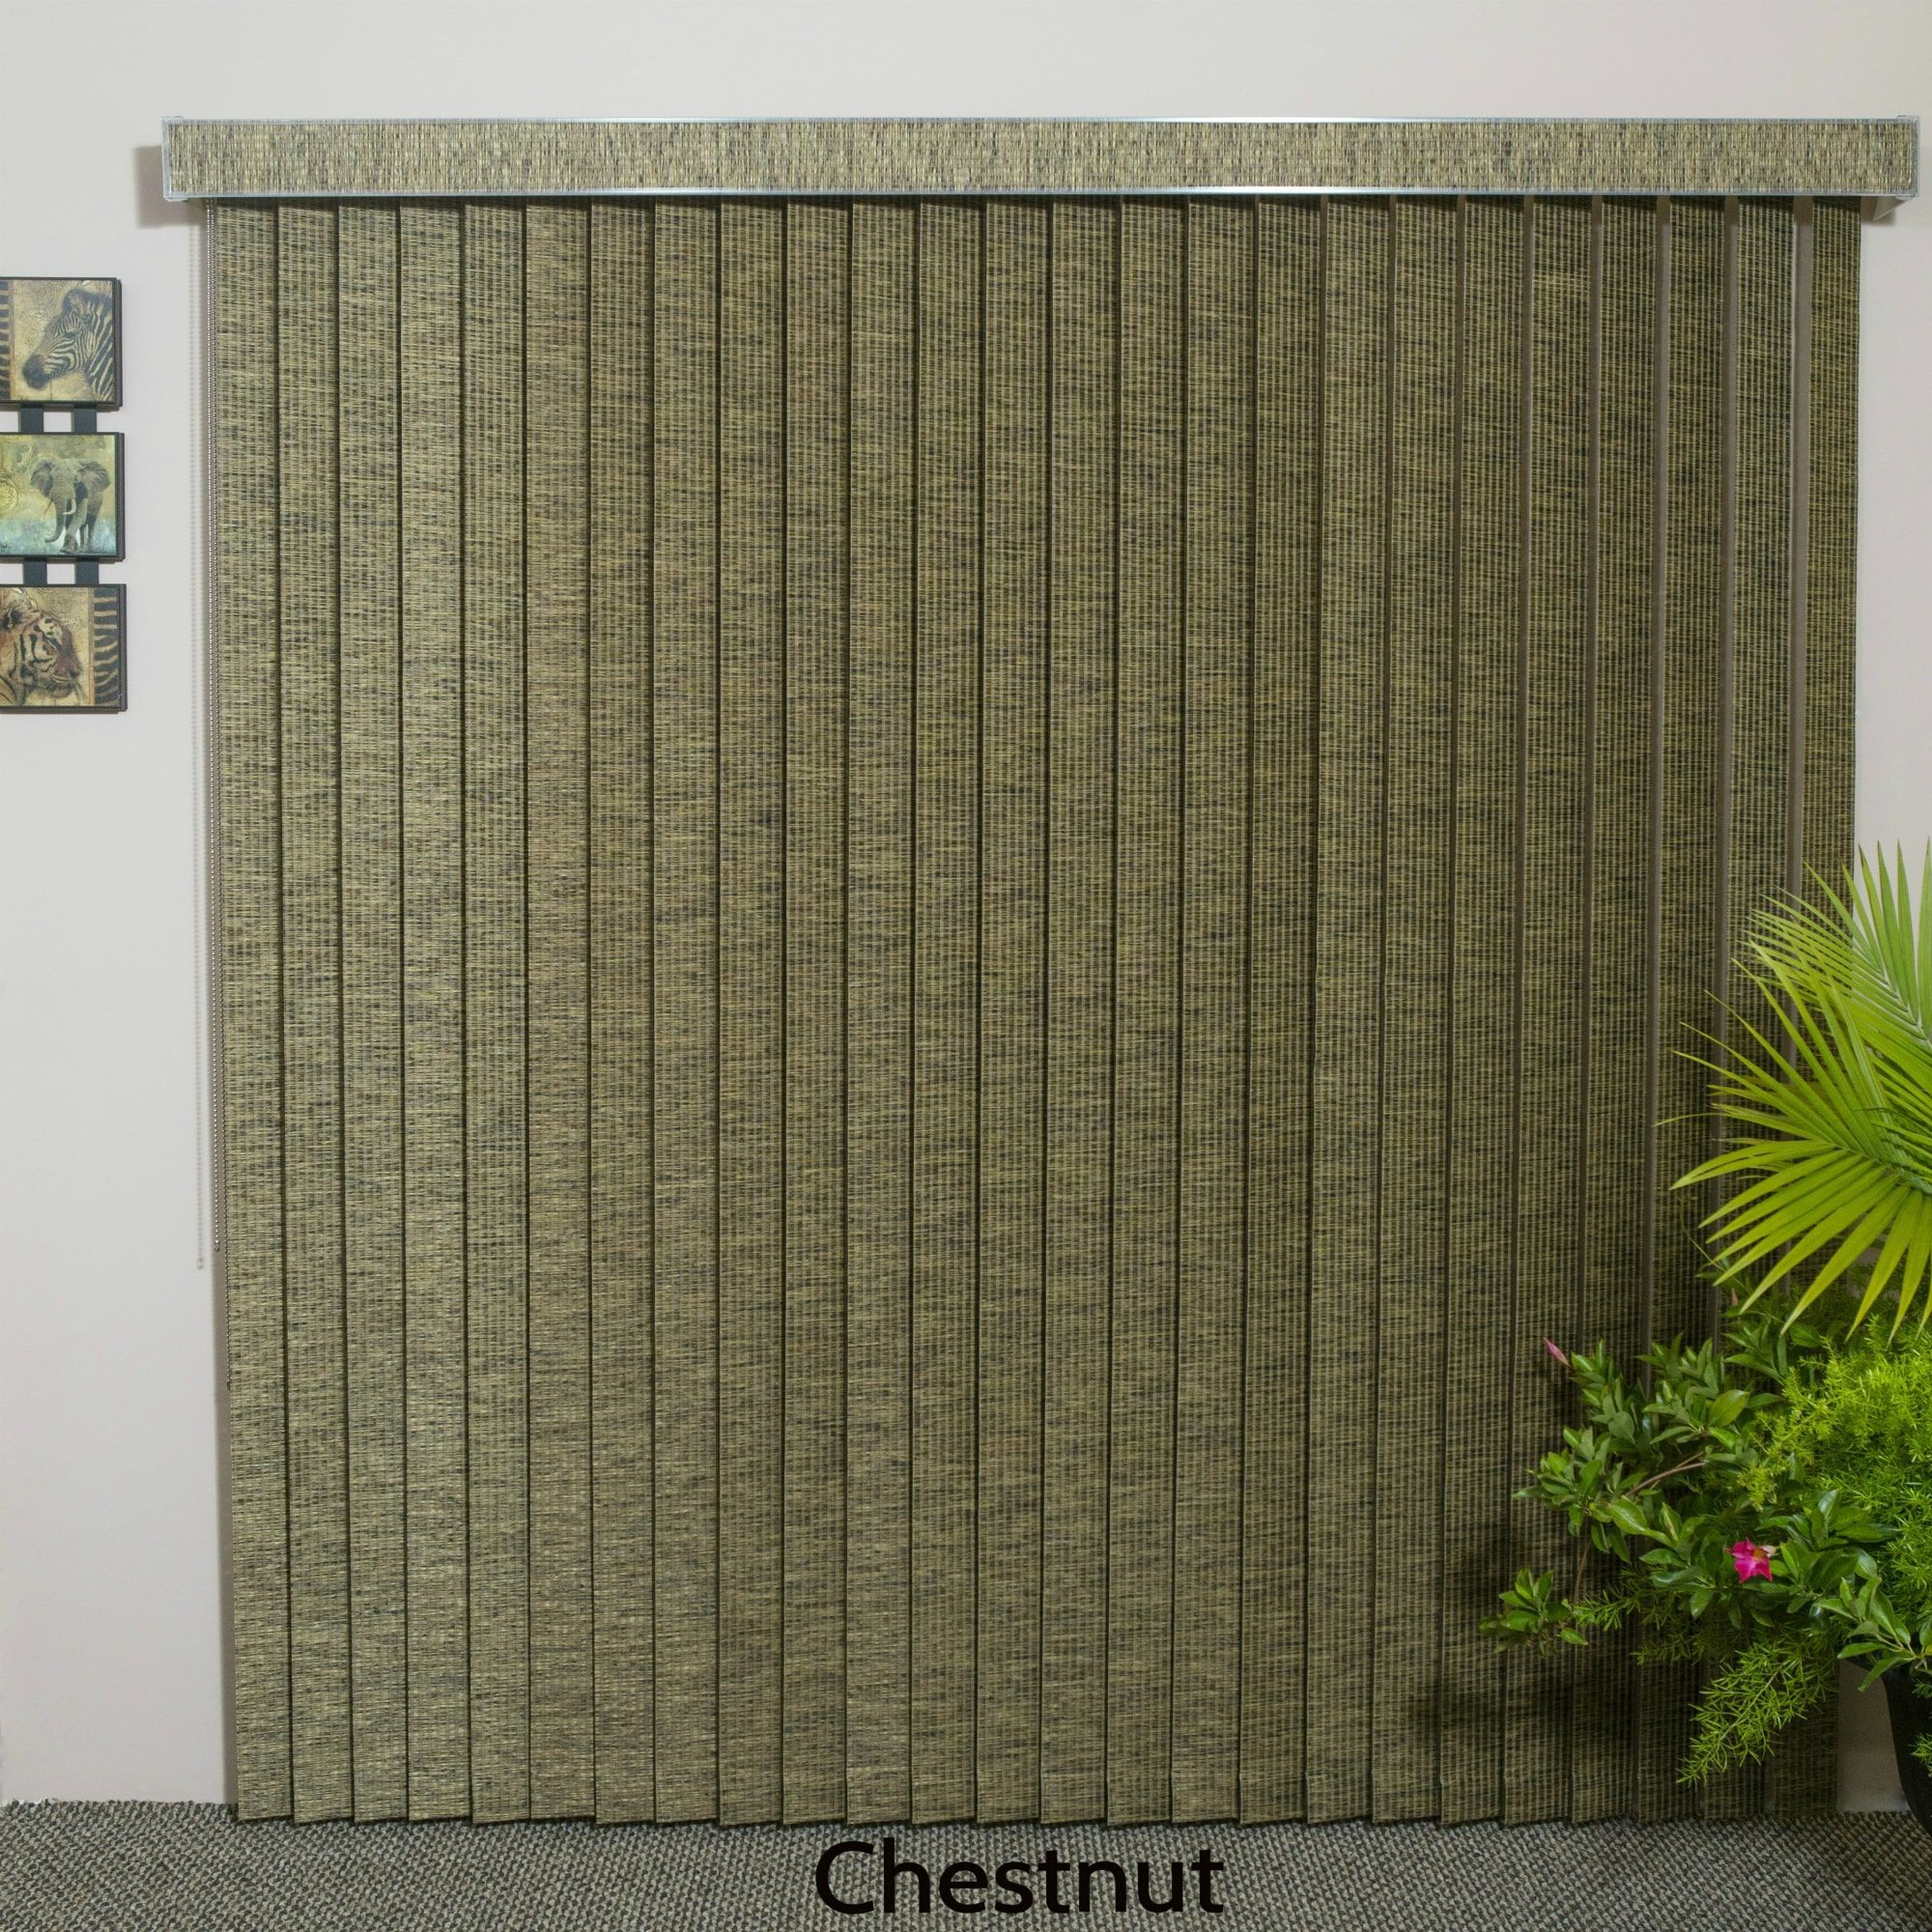 Edinborough Chestnut Free Hang Fabric Veritical Blind 48 Inches Long X 36 To 100 Wide